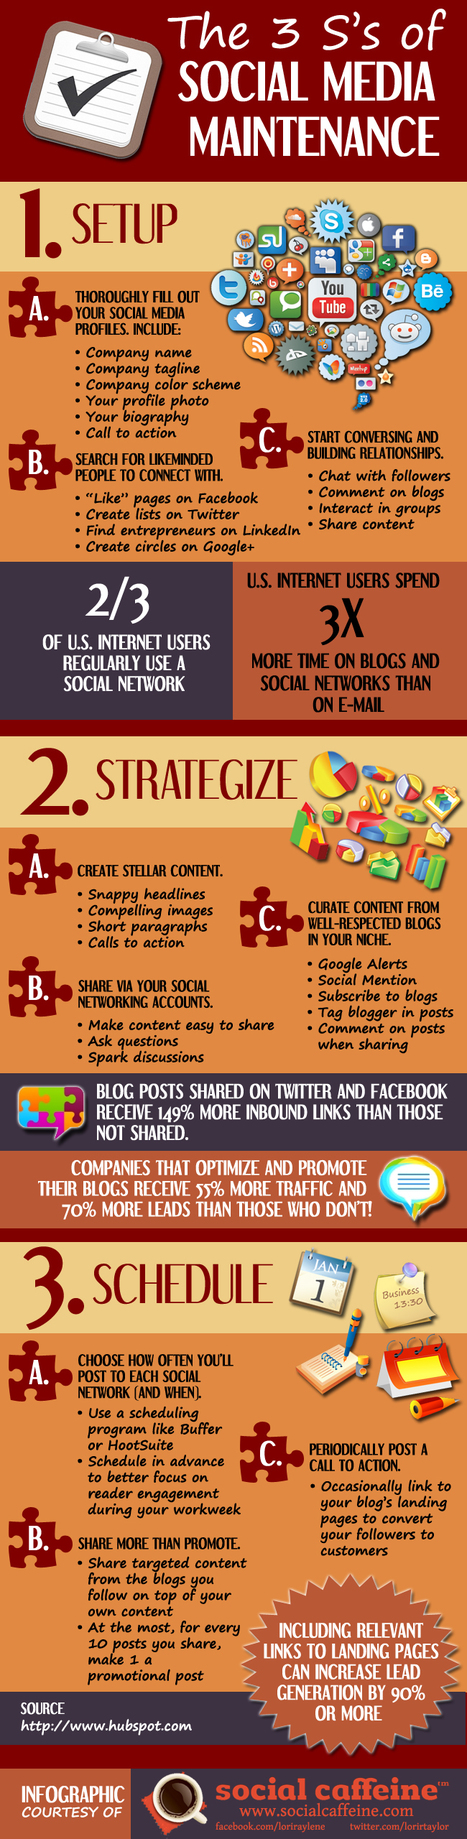 3 S's of Social Media: Setup, Strategize and Schedule [Infographic] | Social Media (network, technology, blog, community, virtual reality, etc...) | Scoop.it